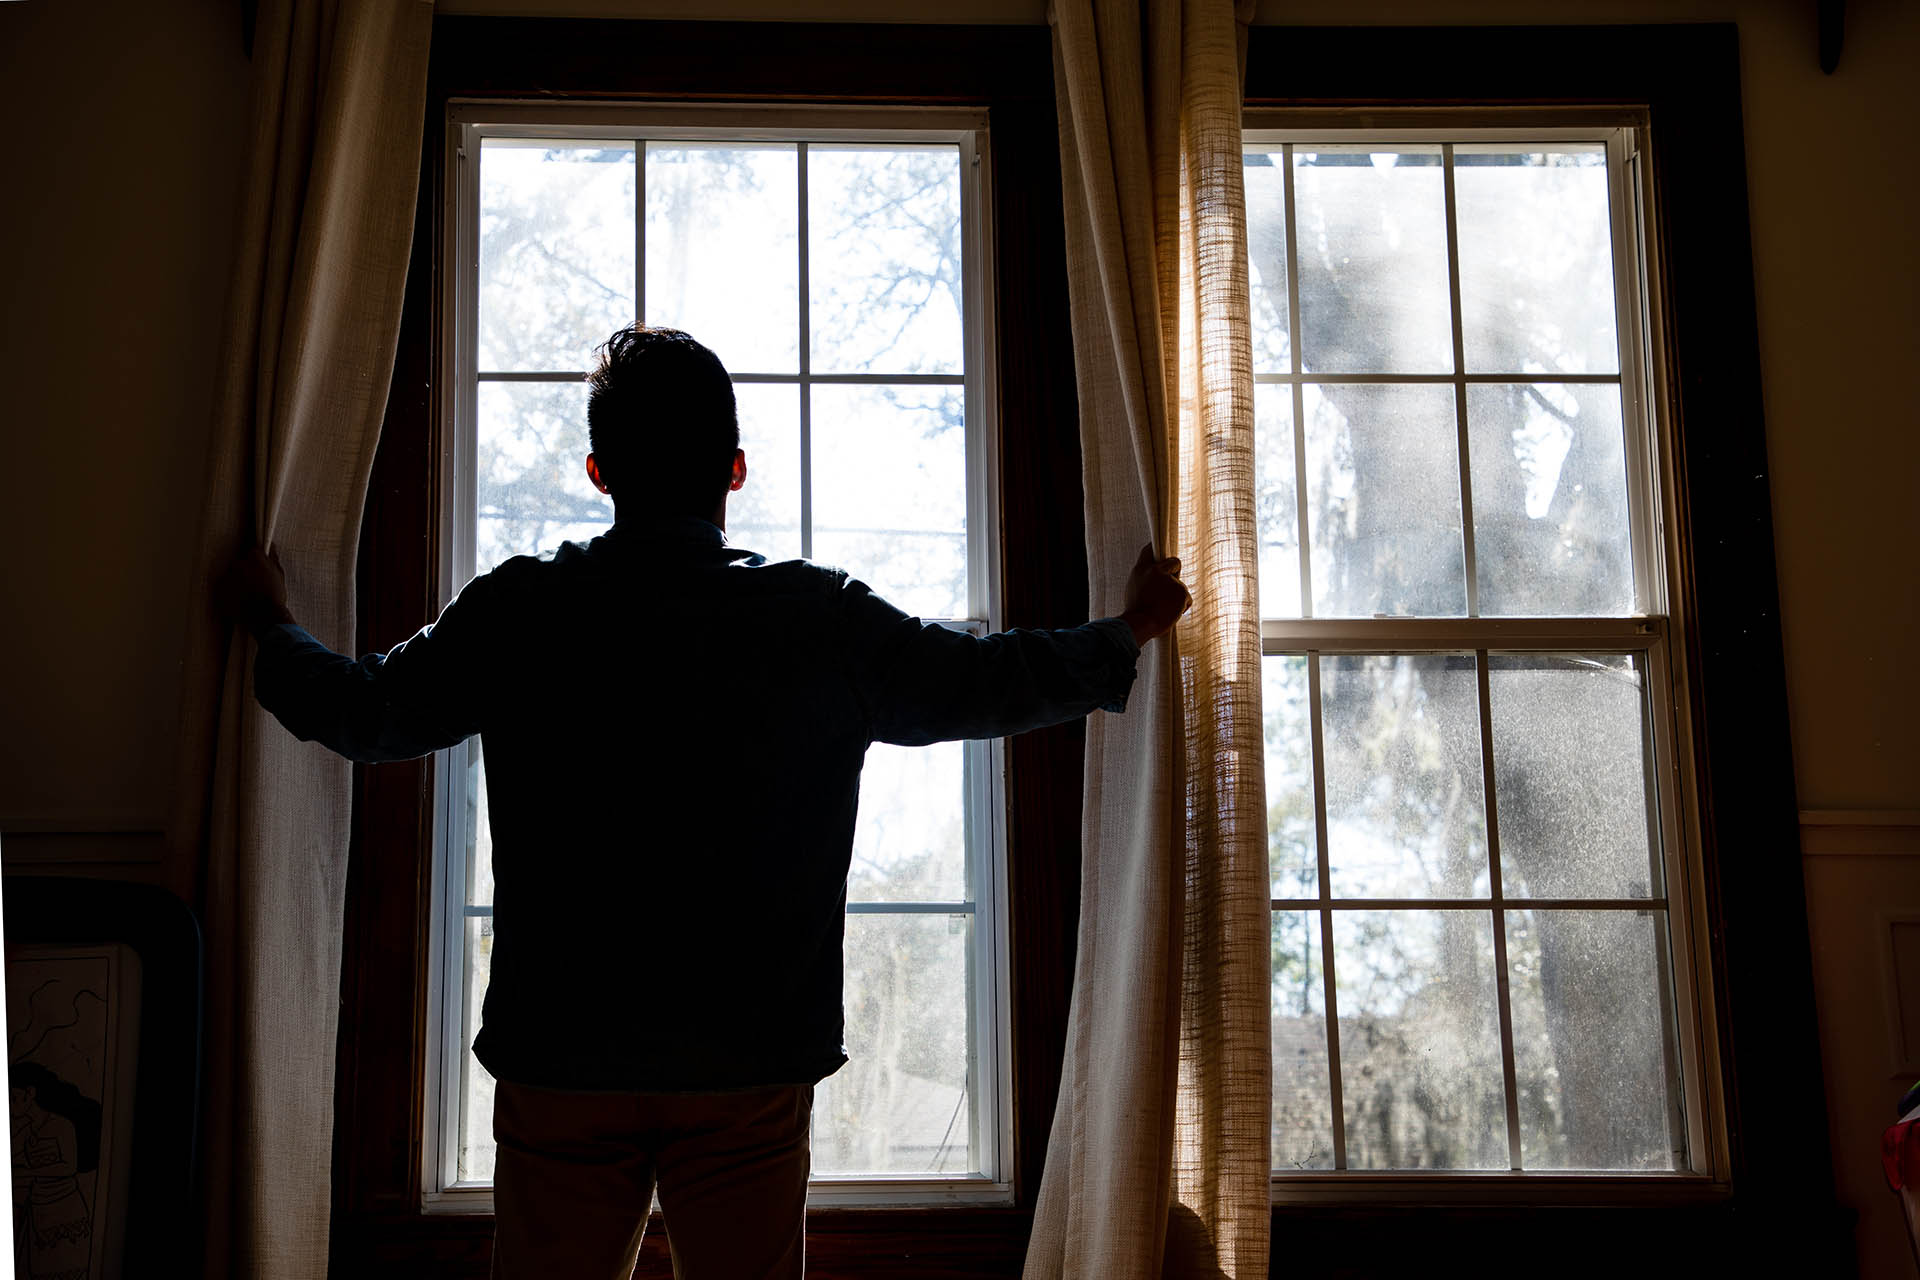 A man in front of a window